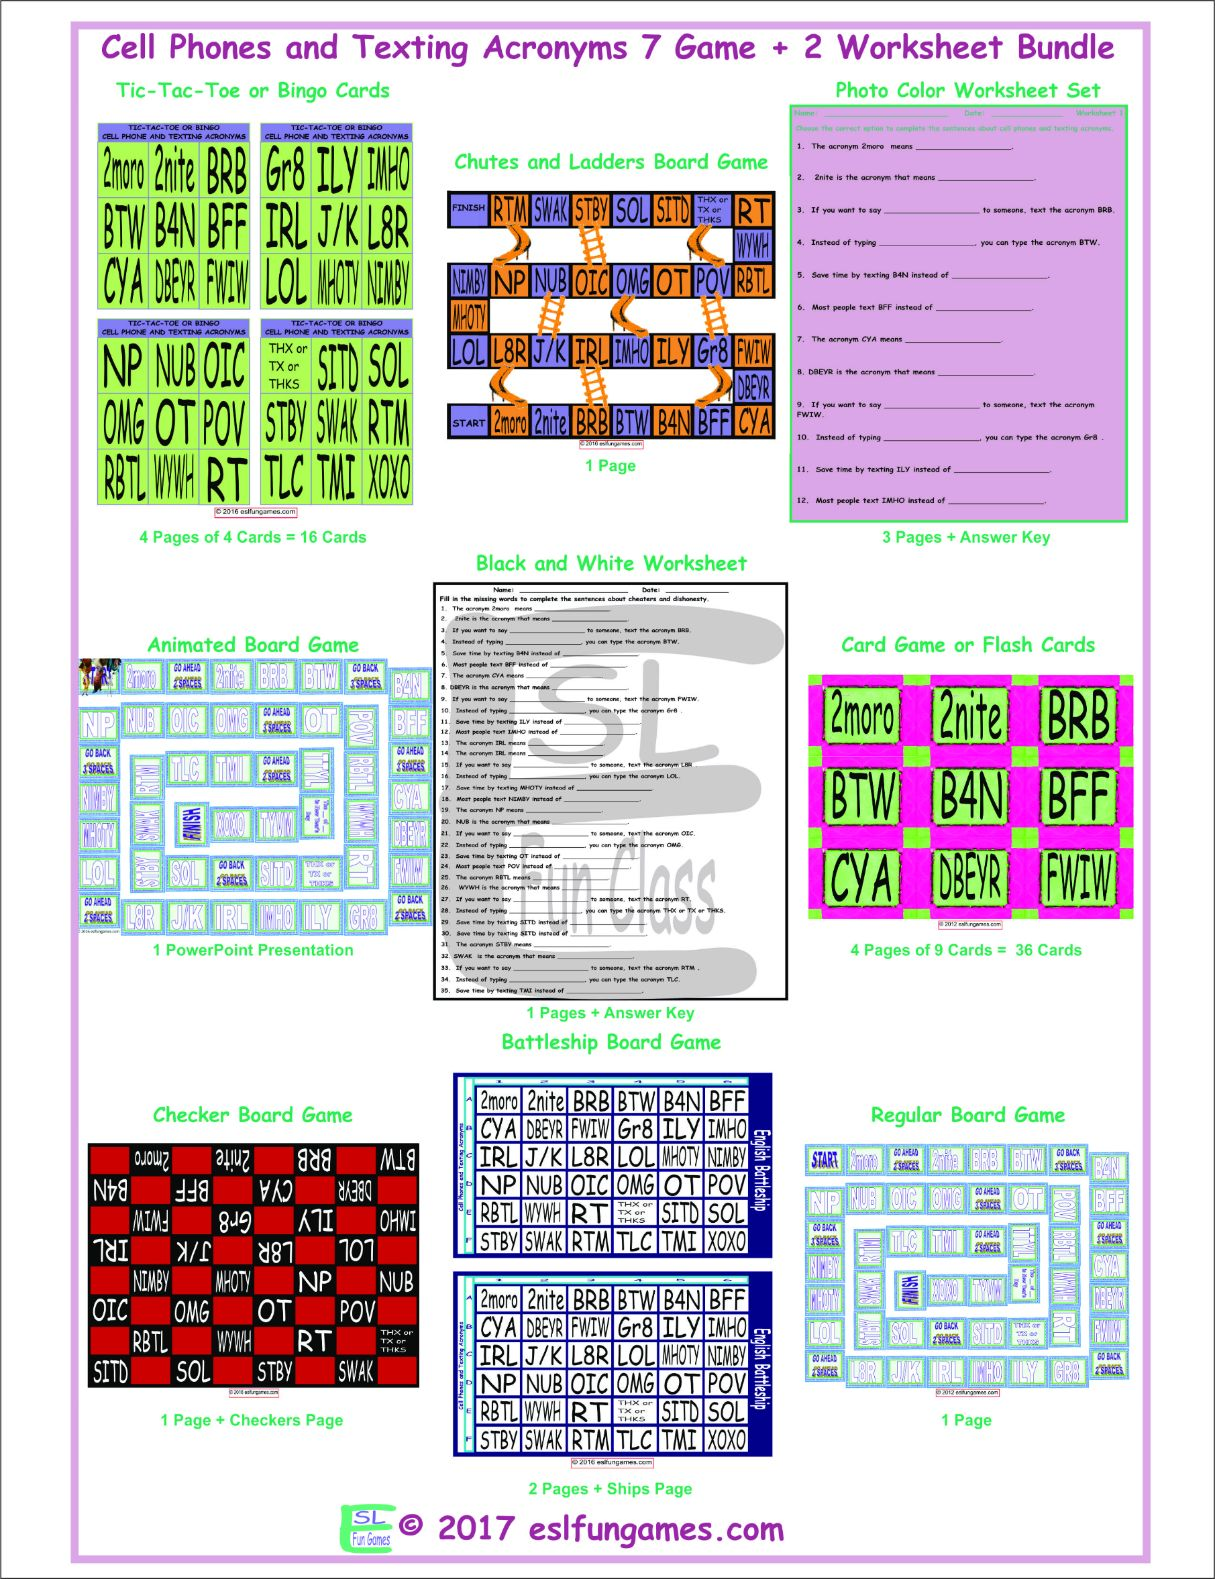 Cell Phones and Texting Acronyms 7 Game Plus 2 Worksheet Bundle